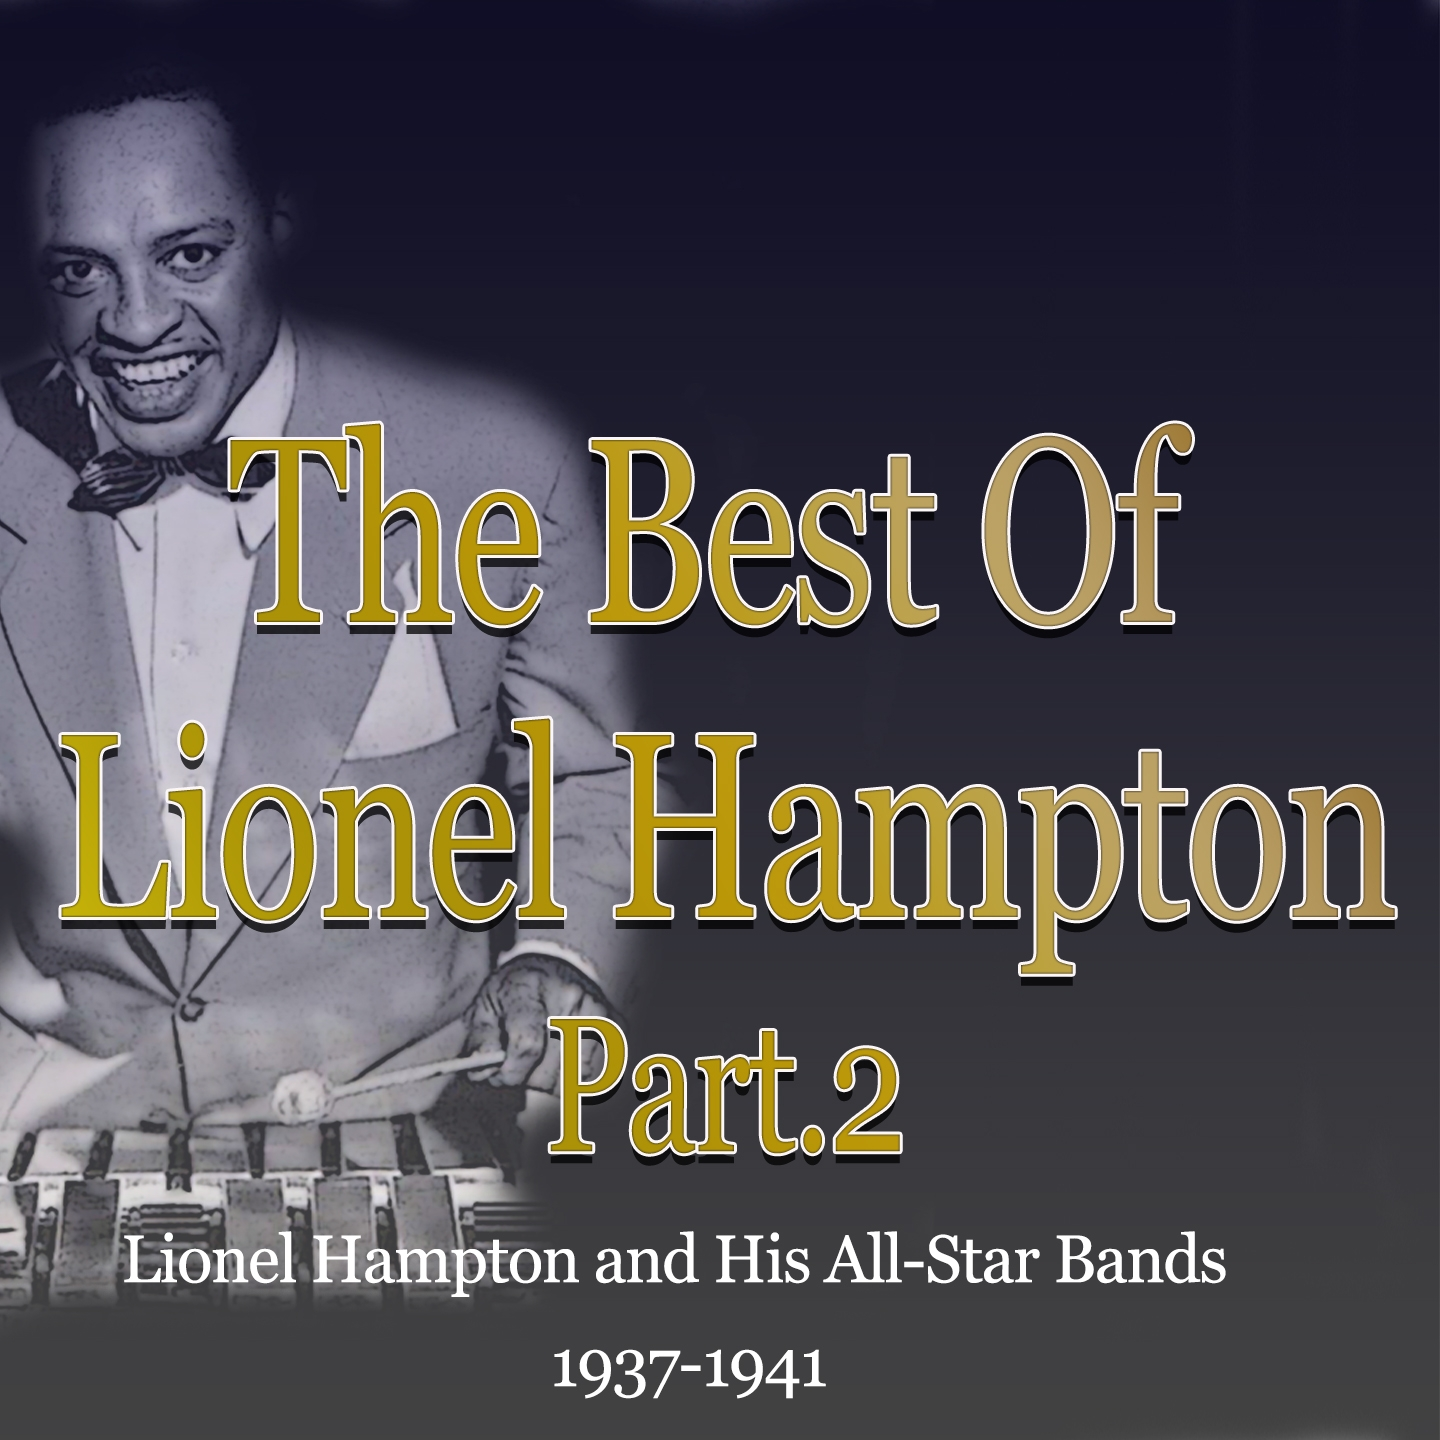 The Best of Lionel Hampton, Part 2 - Lionel Hampton and His All-Star Bands (1937-1941)